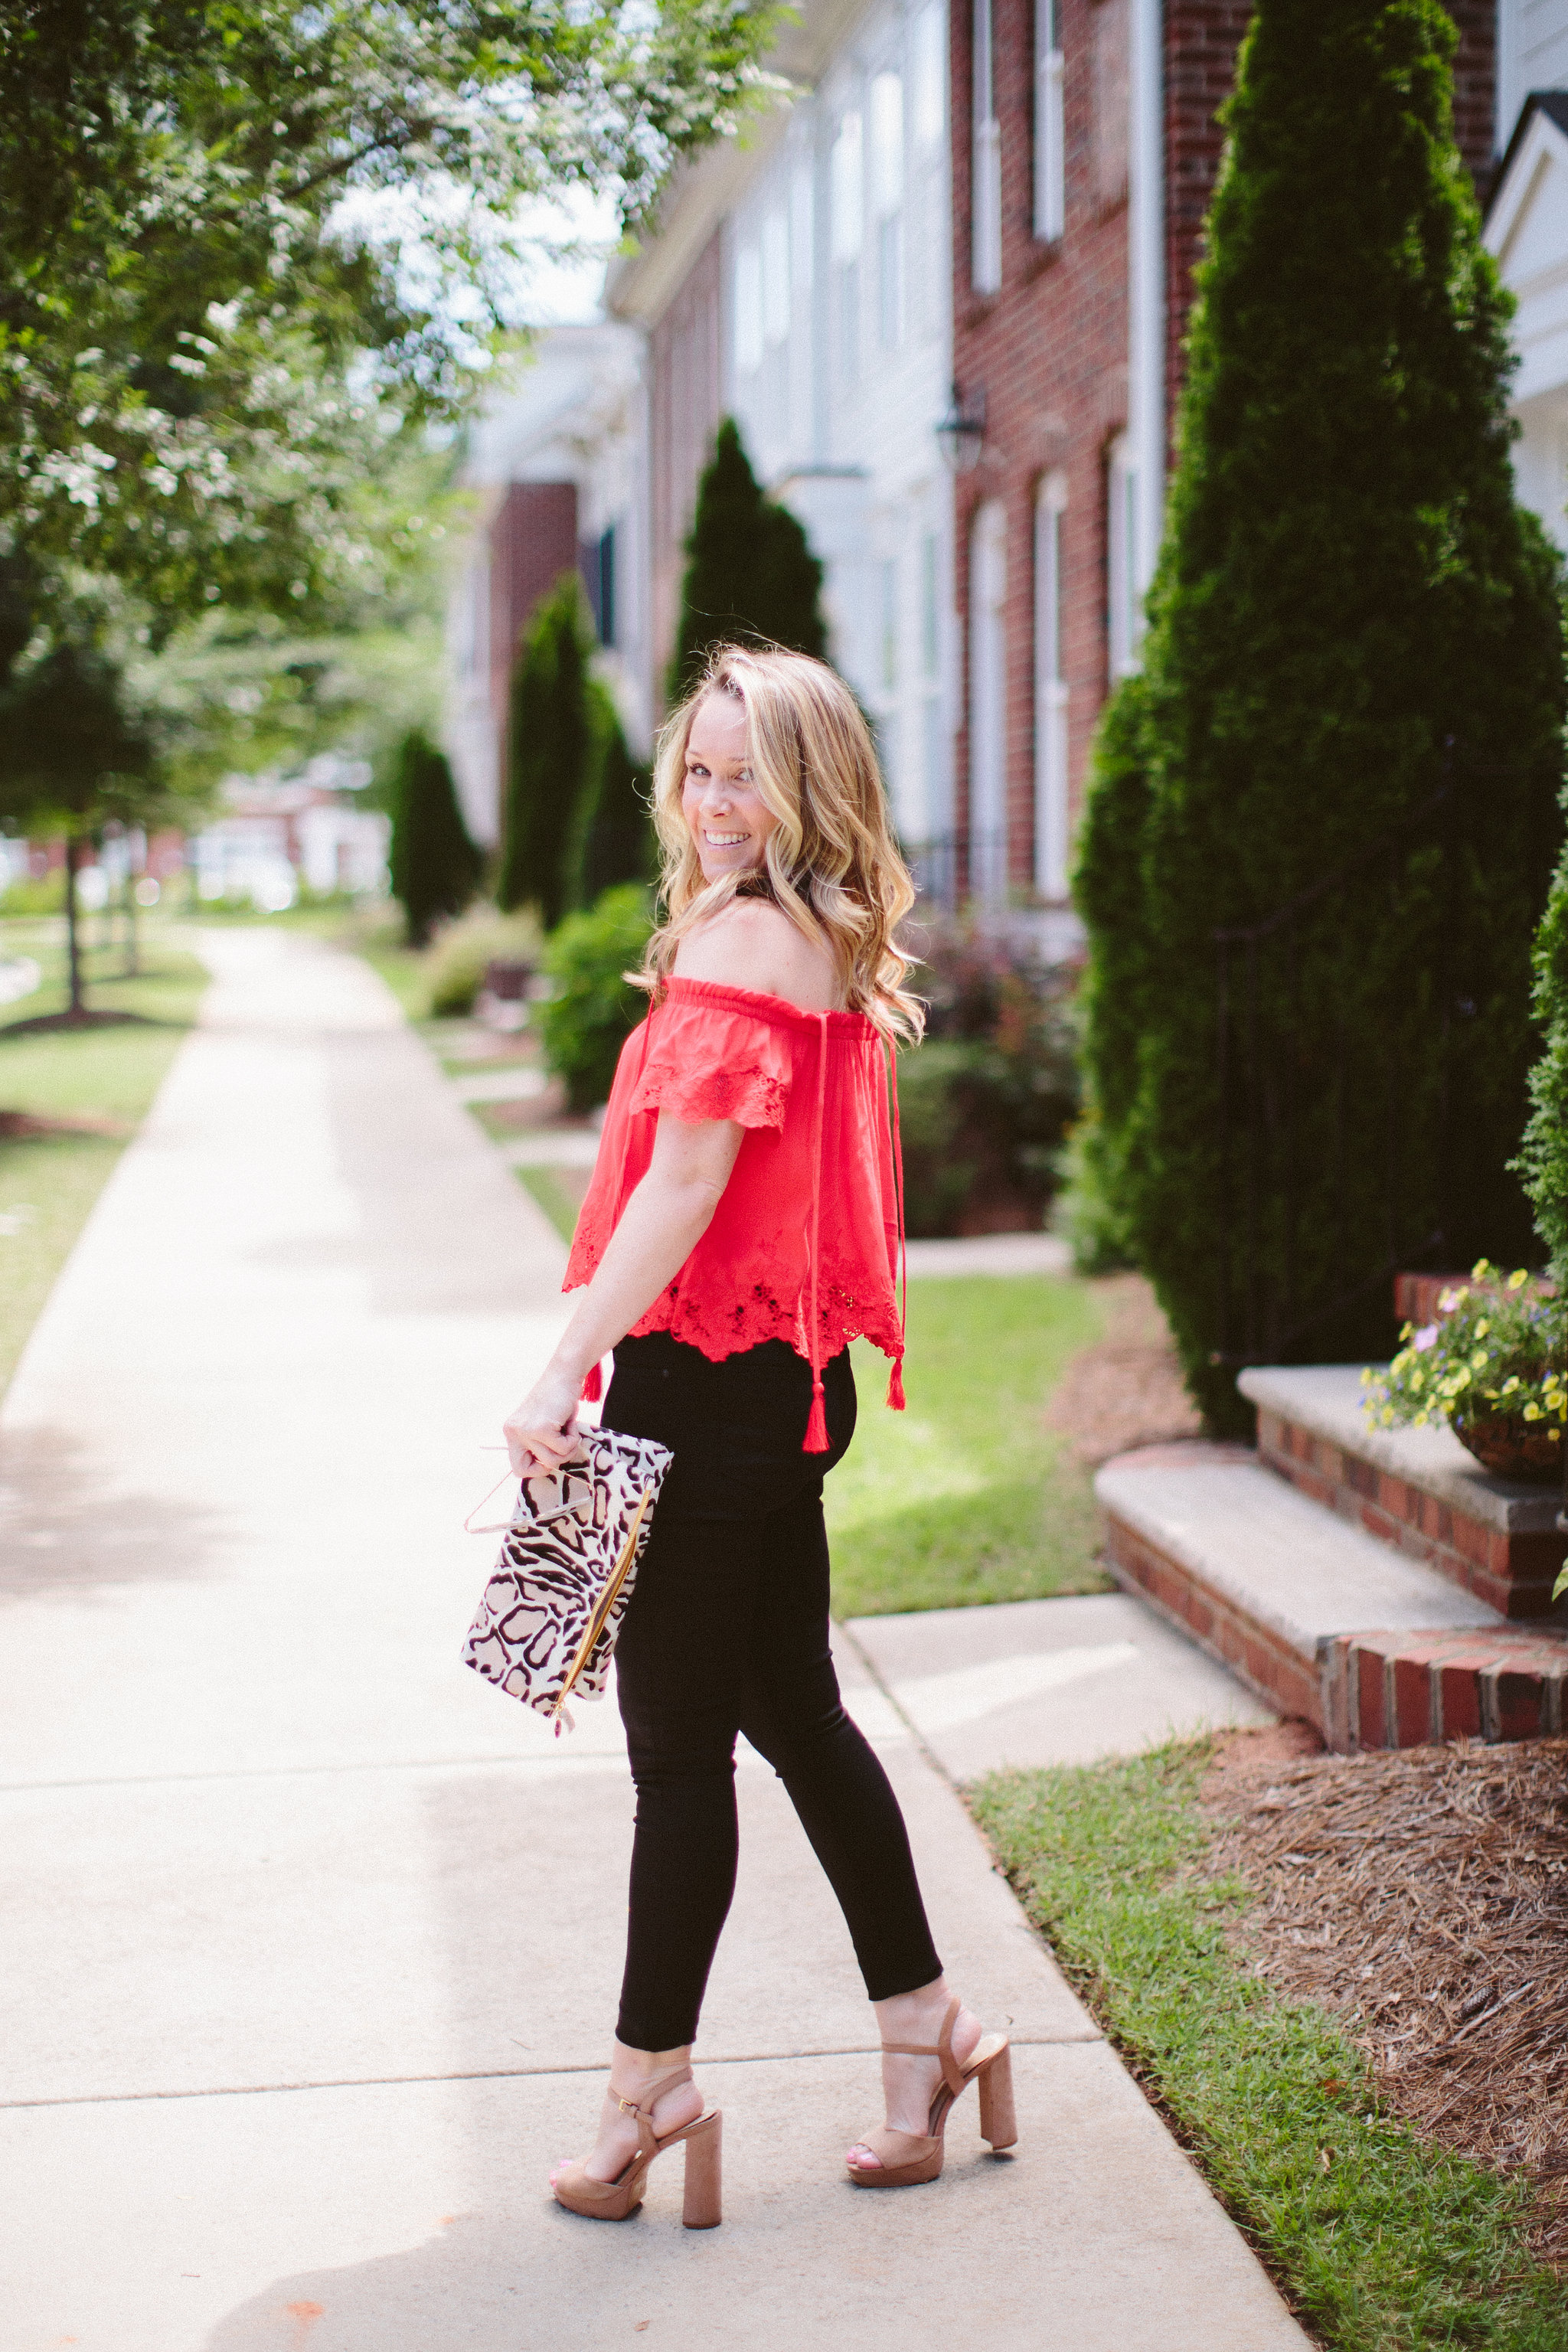 Mott and Bow Jeans by NC fashion blogger Every Chic Way